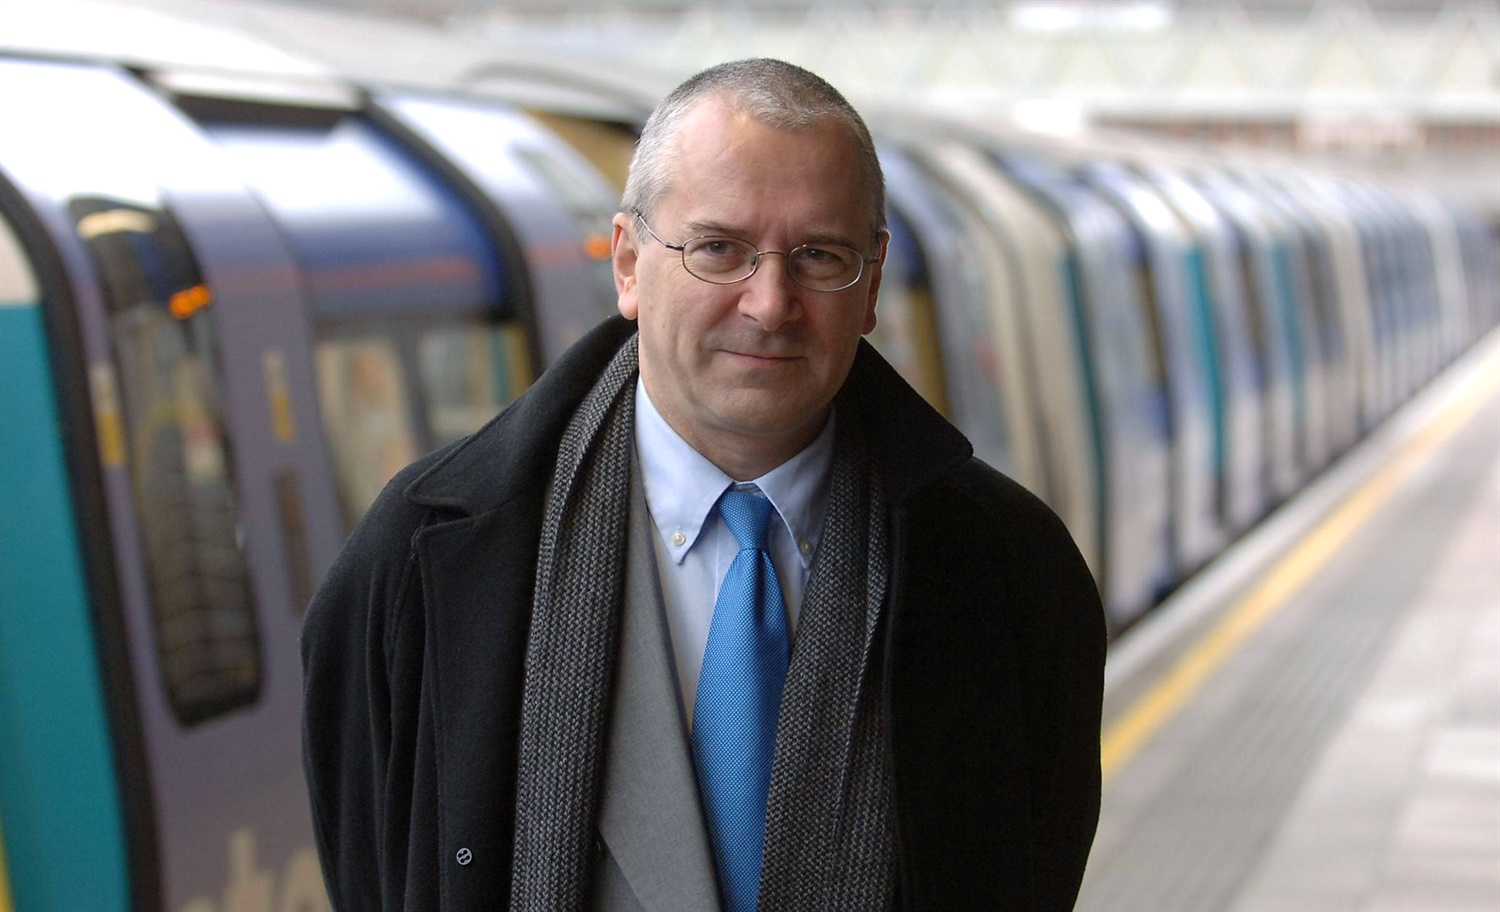 'London's suburban rail services are awful', says TfL's top man